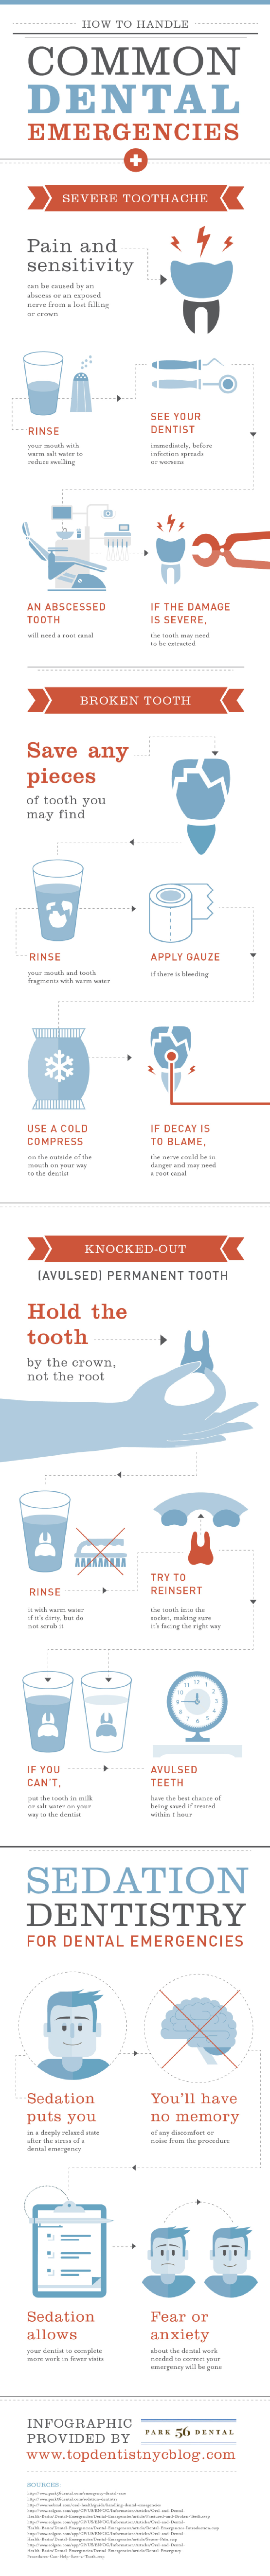 How-To-Handle-Common-Dental-Emergencies-Infographic